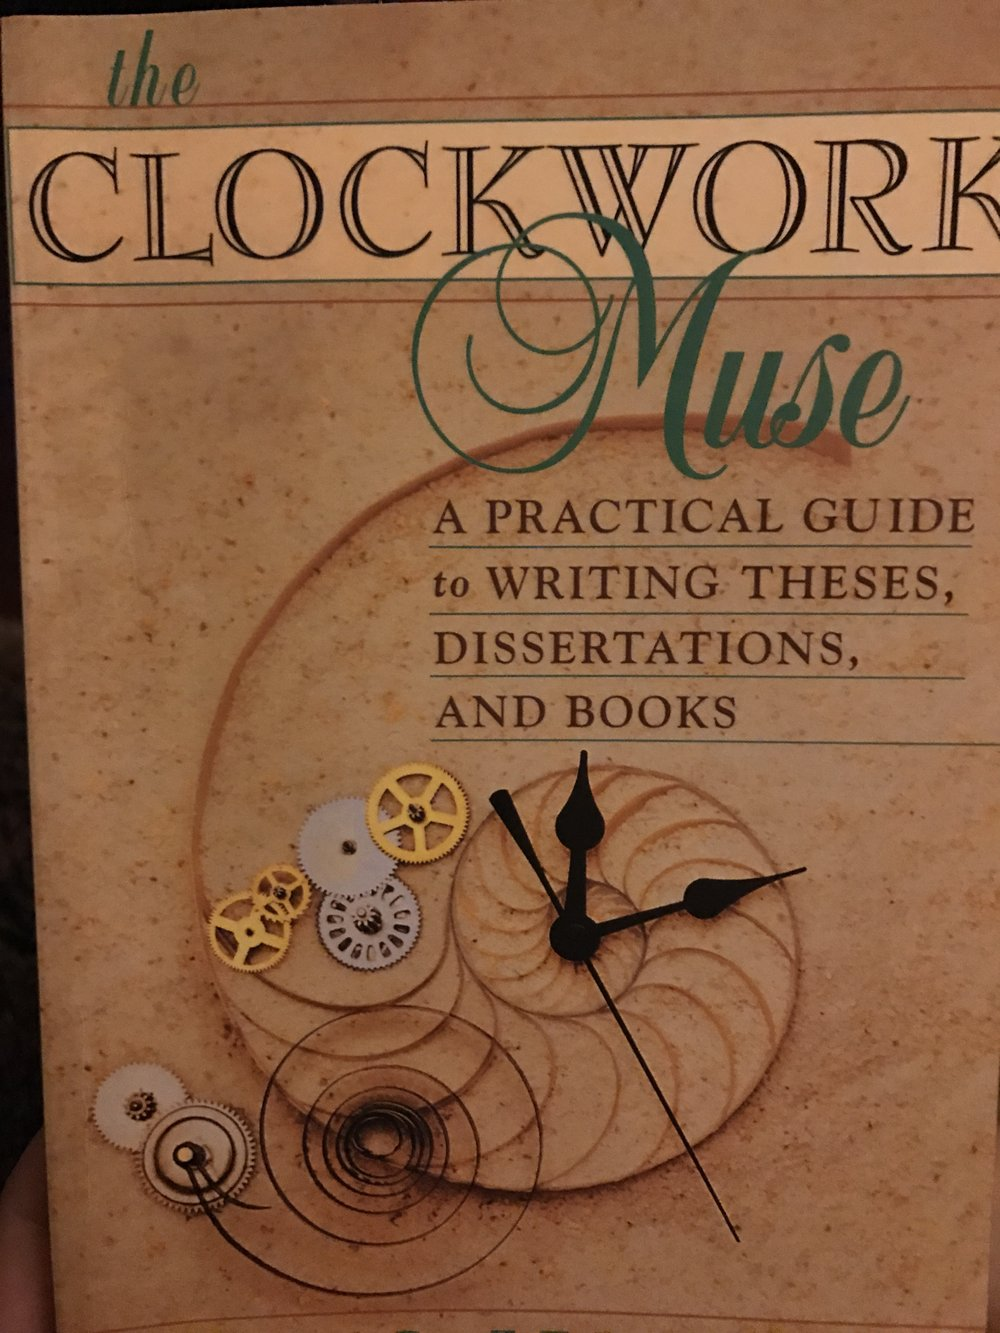 The Clockwork Muse by Eviatar Zerubavel